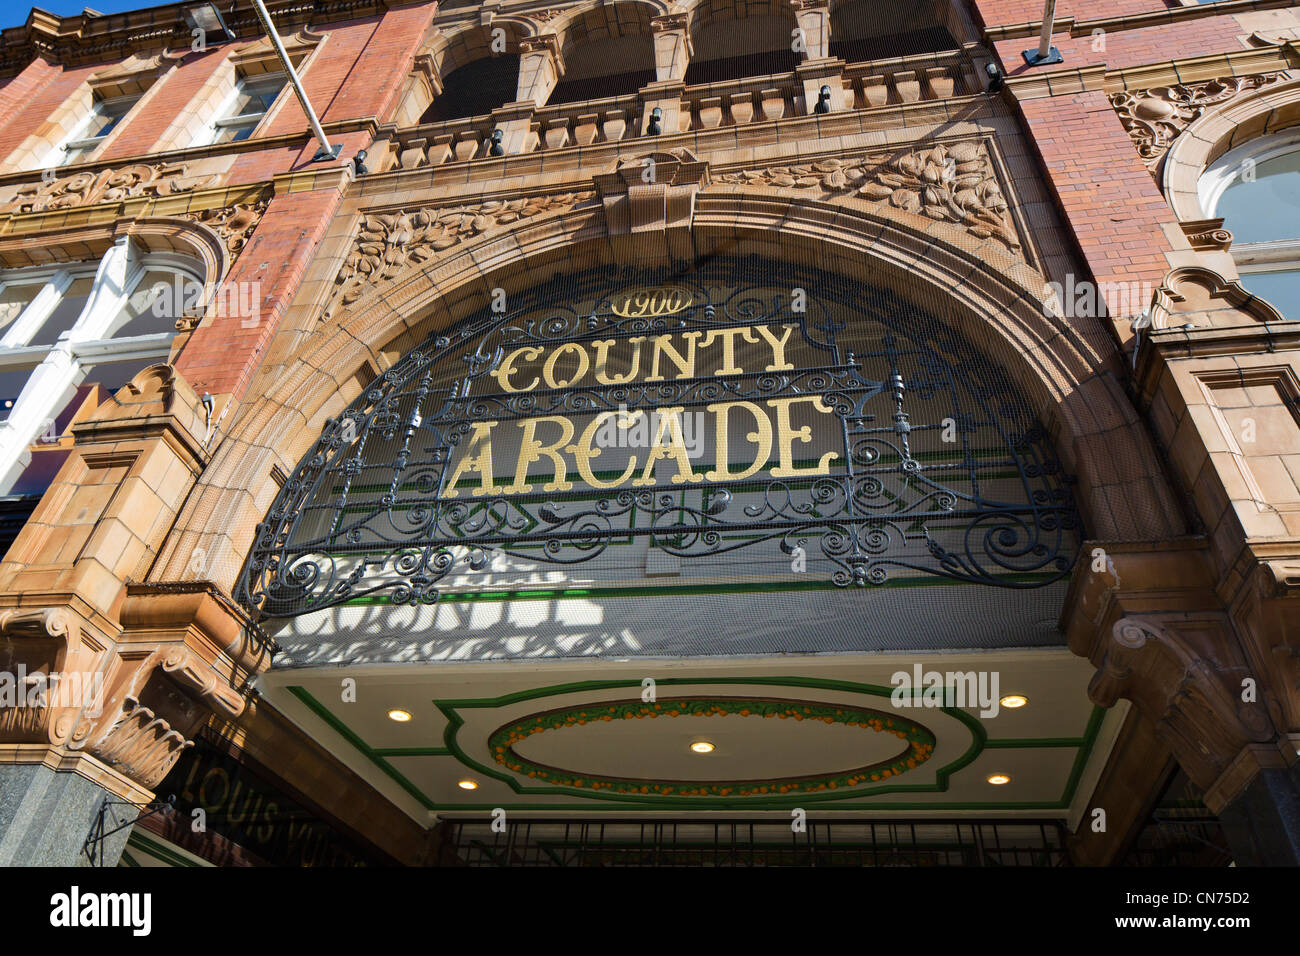 Entrance to the County Arcade in the Victoria Quarter, Briggate, Leeds, West Yorkshire, England - Stock Image